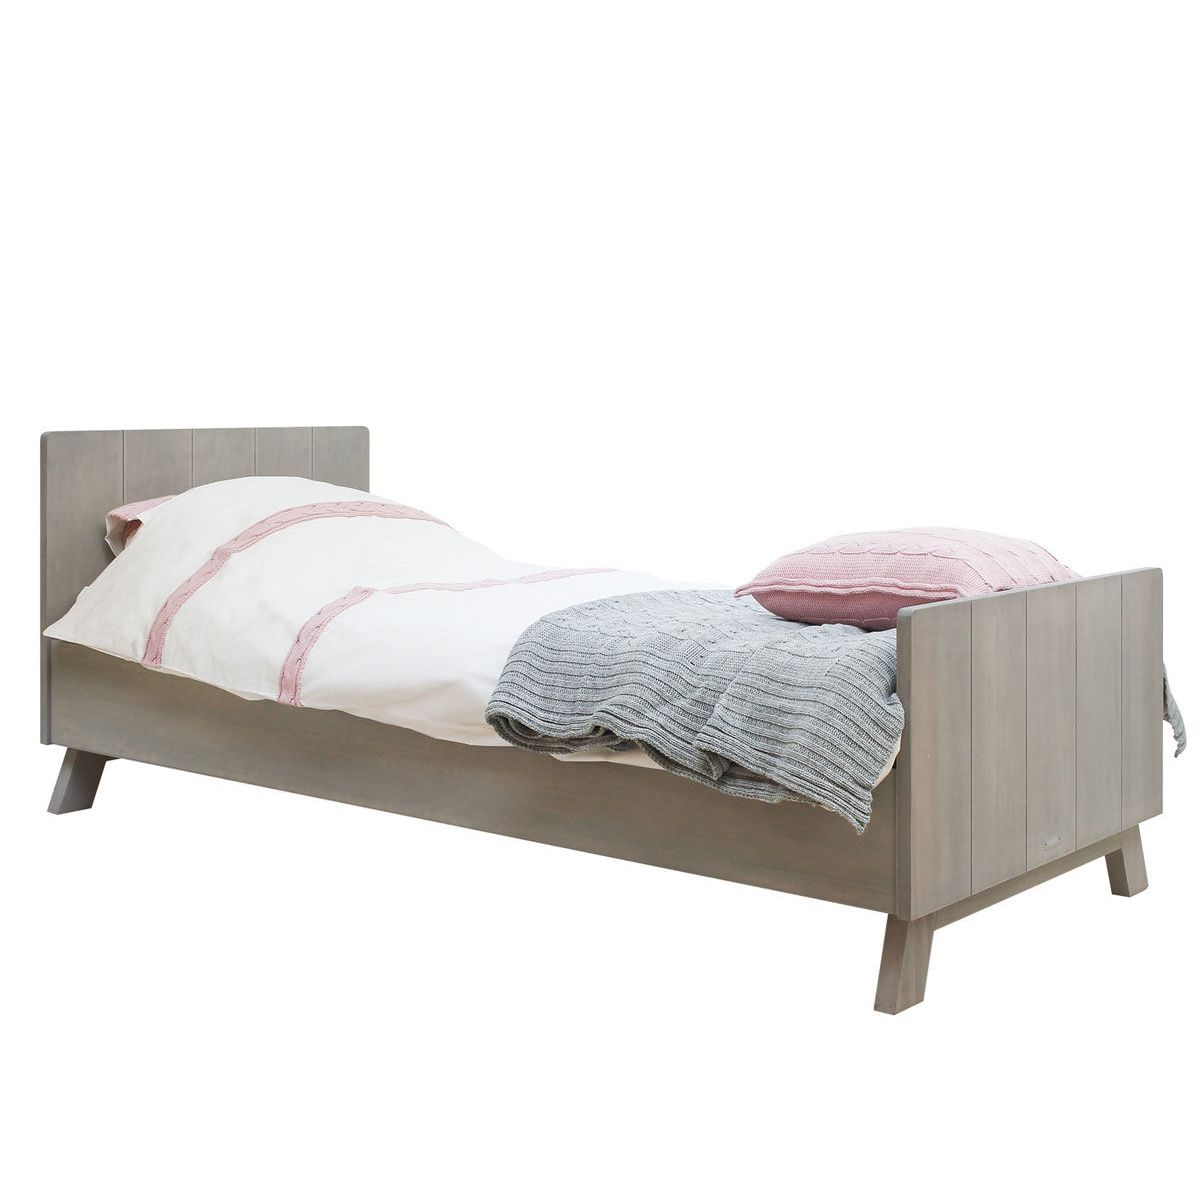 Bopita Pebble Wood Bett 90x200 Cm